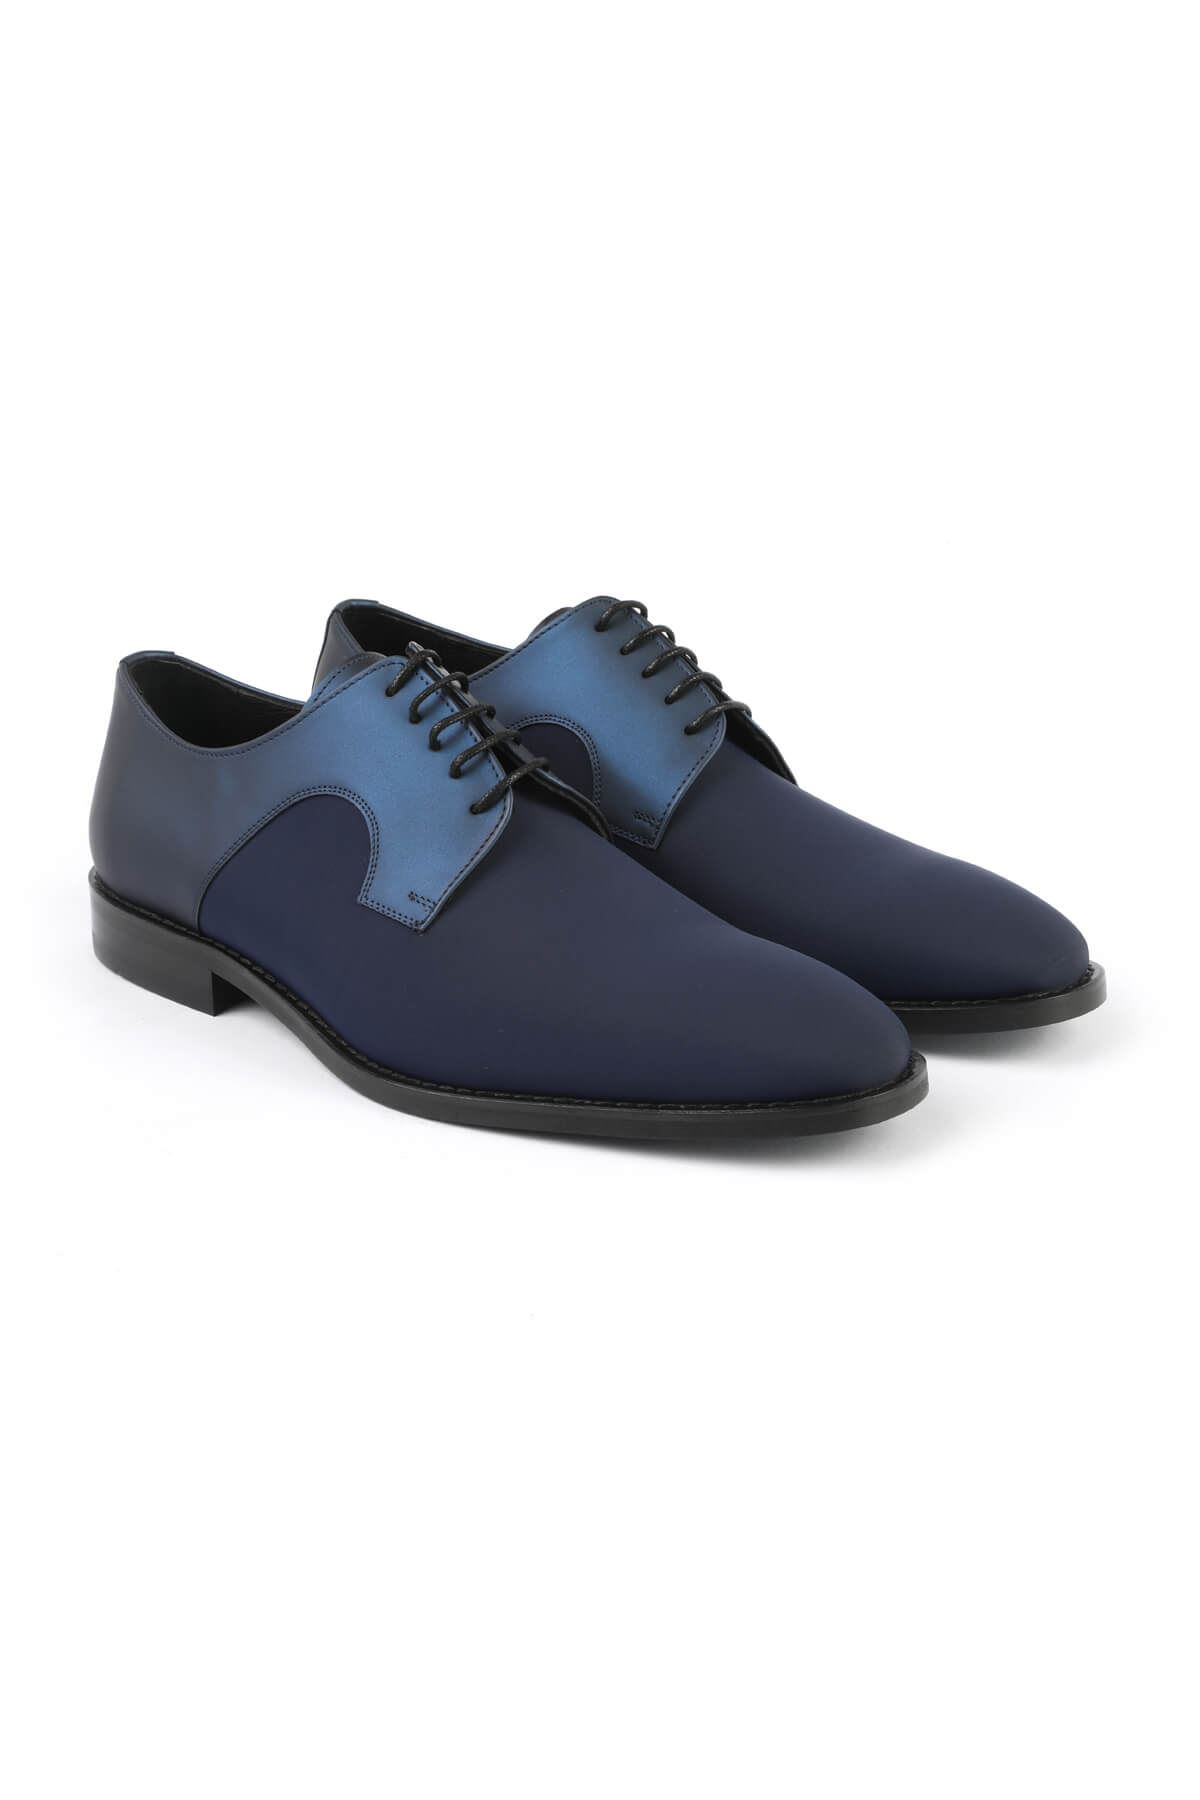 Libero 2727 Navy Blue Classic Shoes